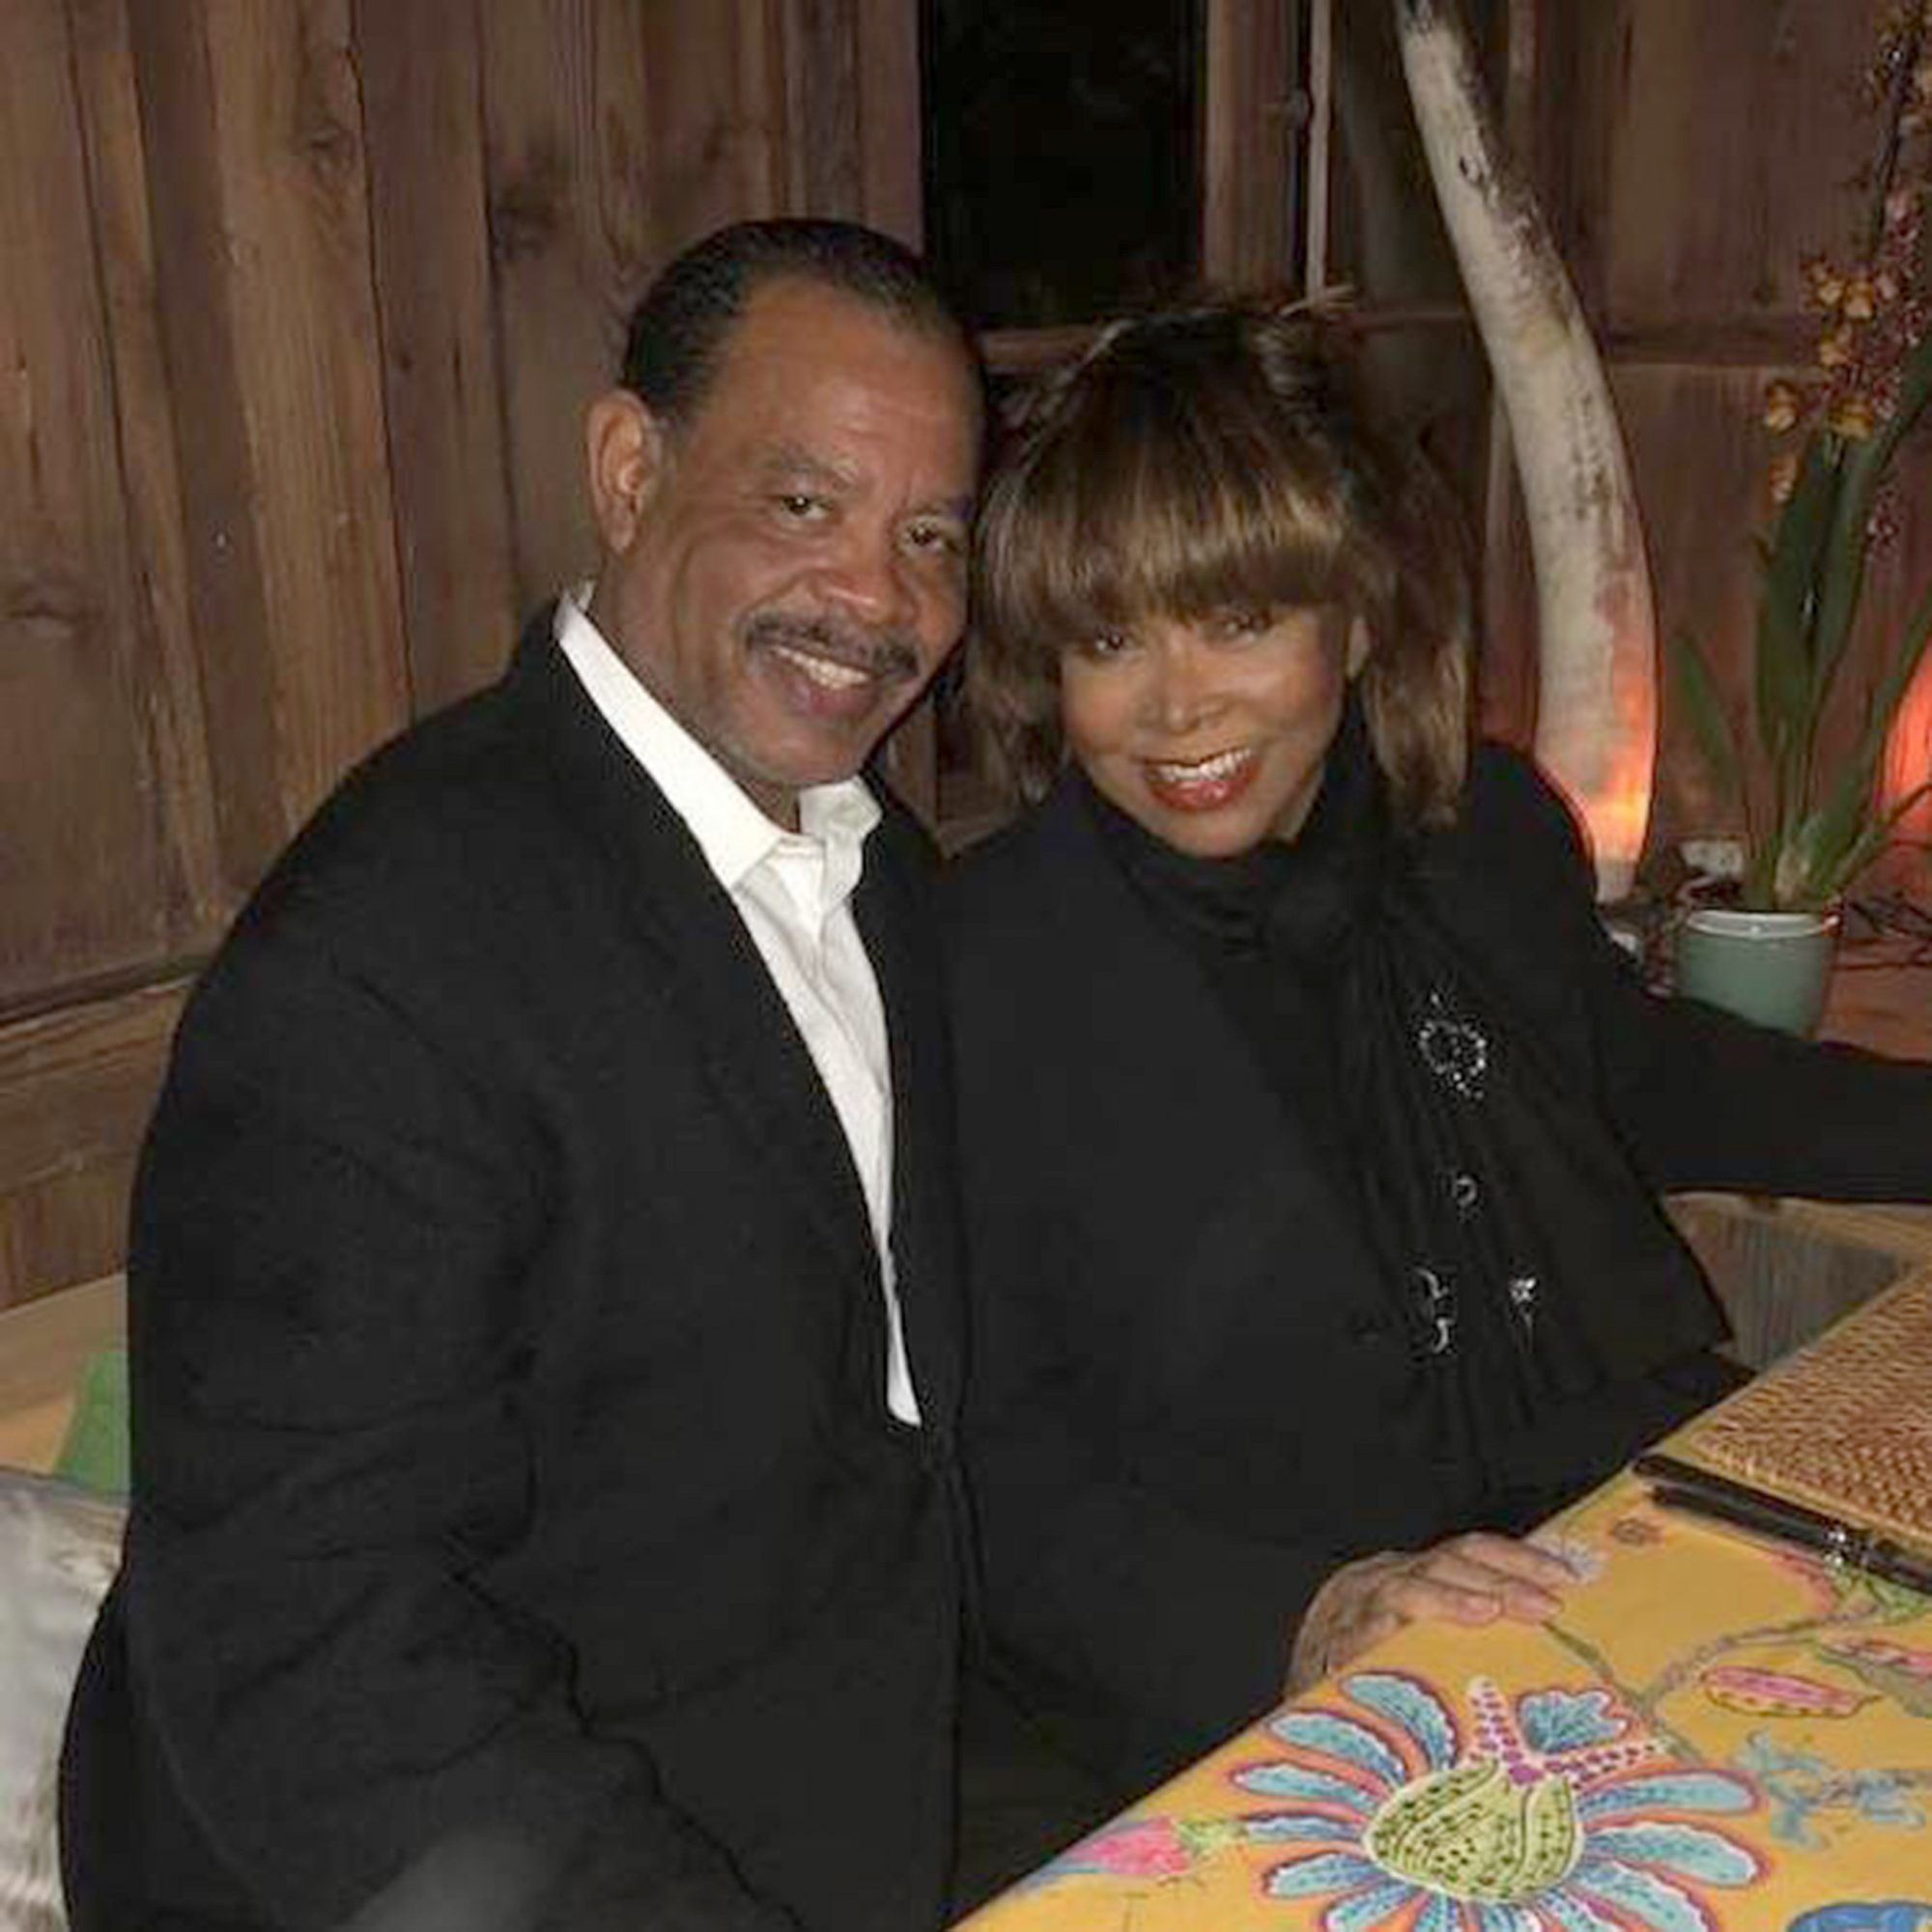 Tina Turner Opens Up About Her Son's Suicide: 'I Still Don't Know What Took Him to the Edge'